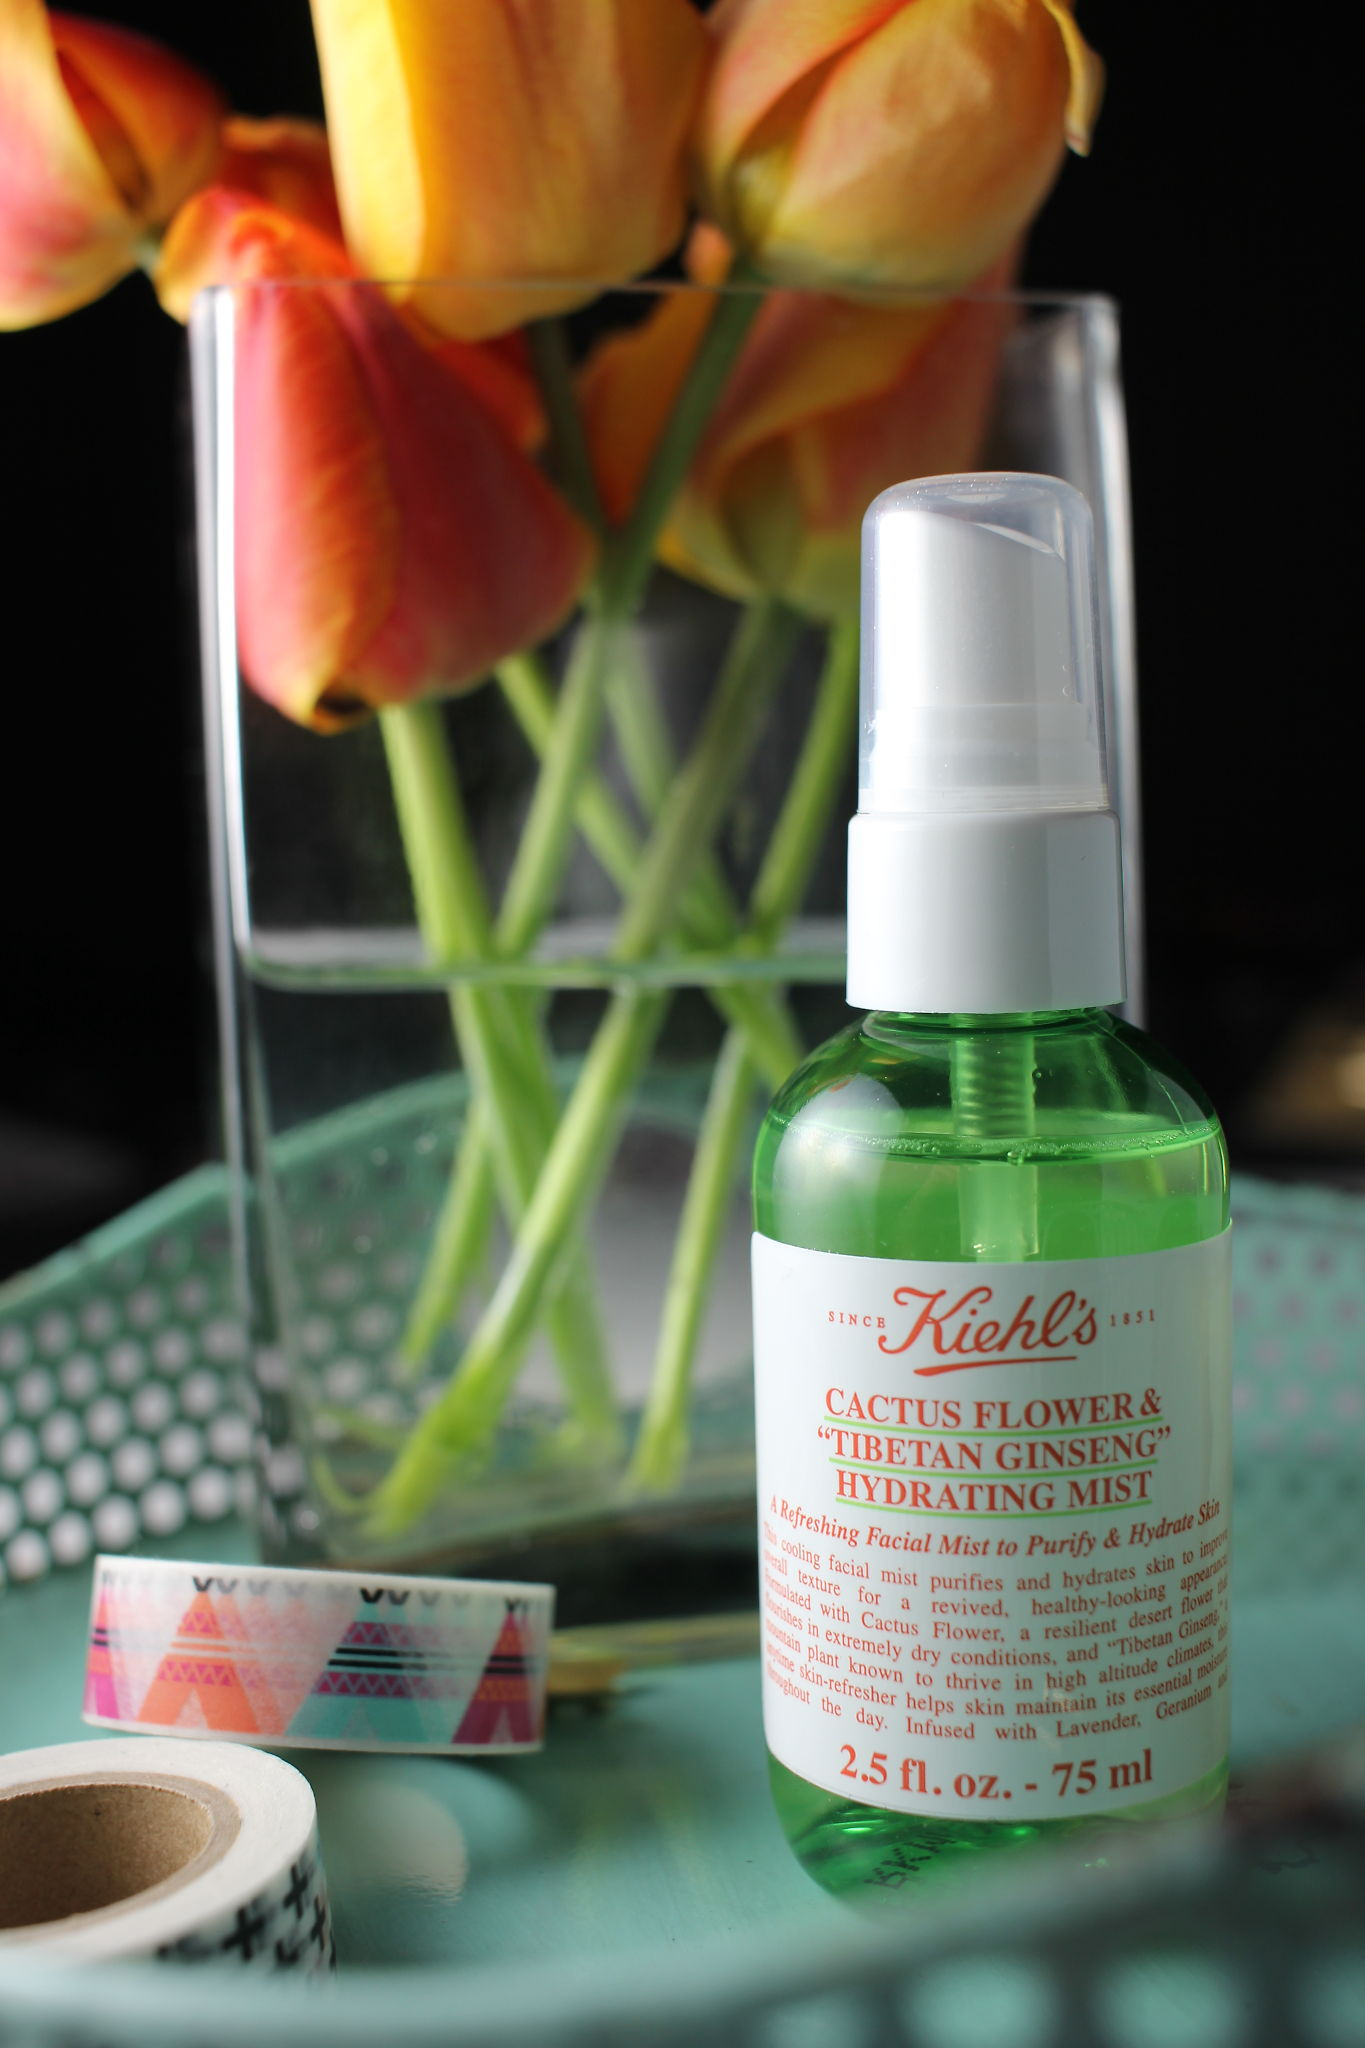 Kiehl's Cactus Flower and Tibetan Gingseng Hydrating Mist